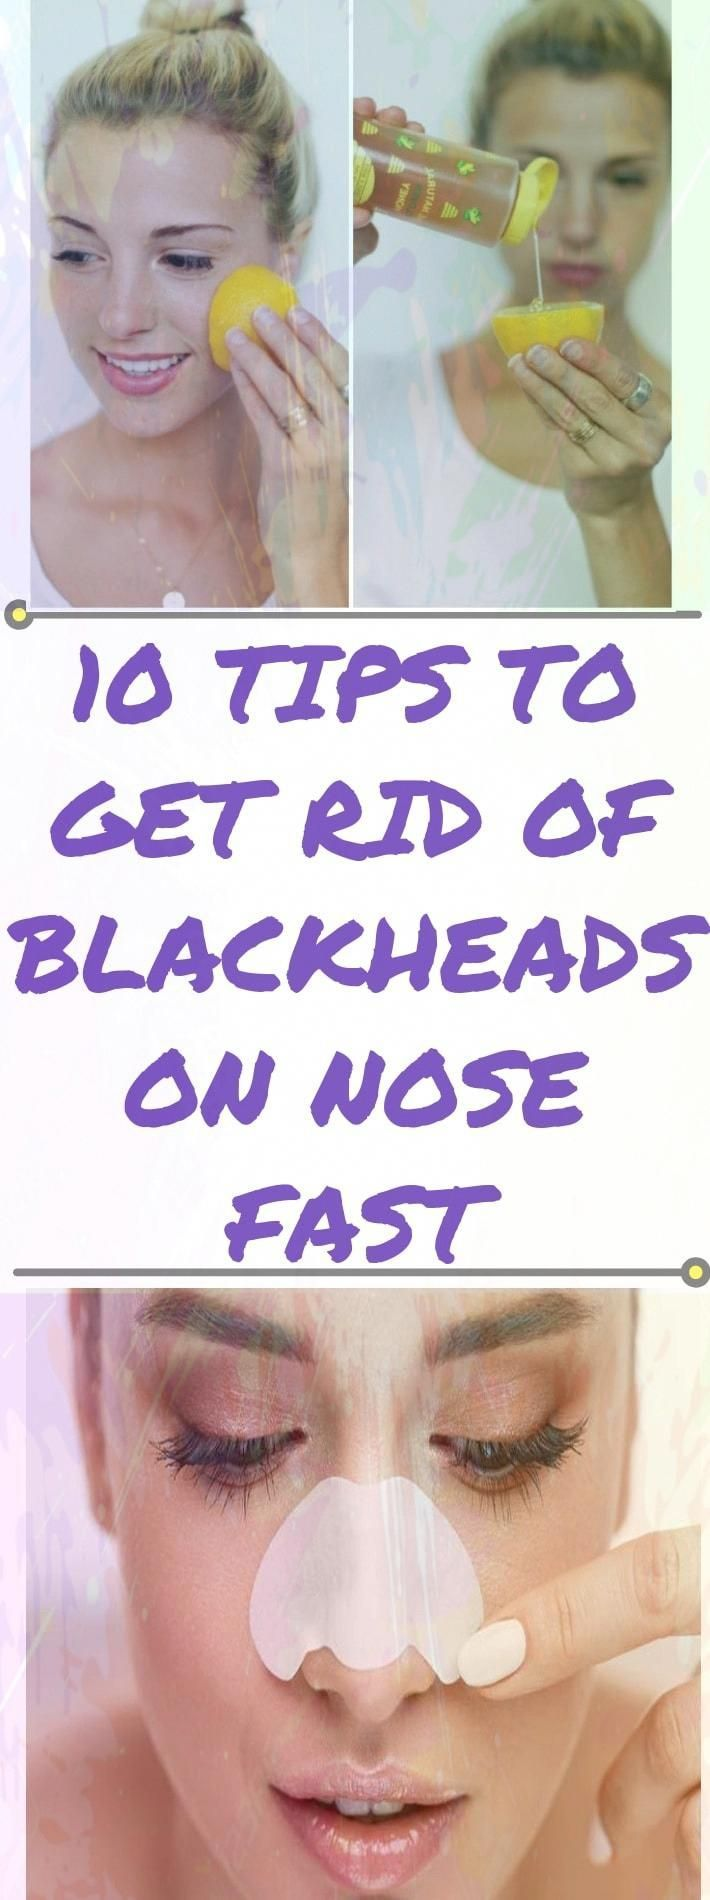 How to Get Rid of Blackheads on Nose? (Fast & Natural Remedies)#health #fitness #healthandfitness  #...